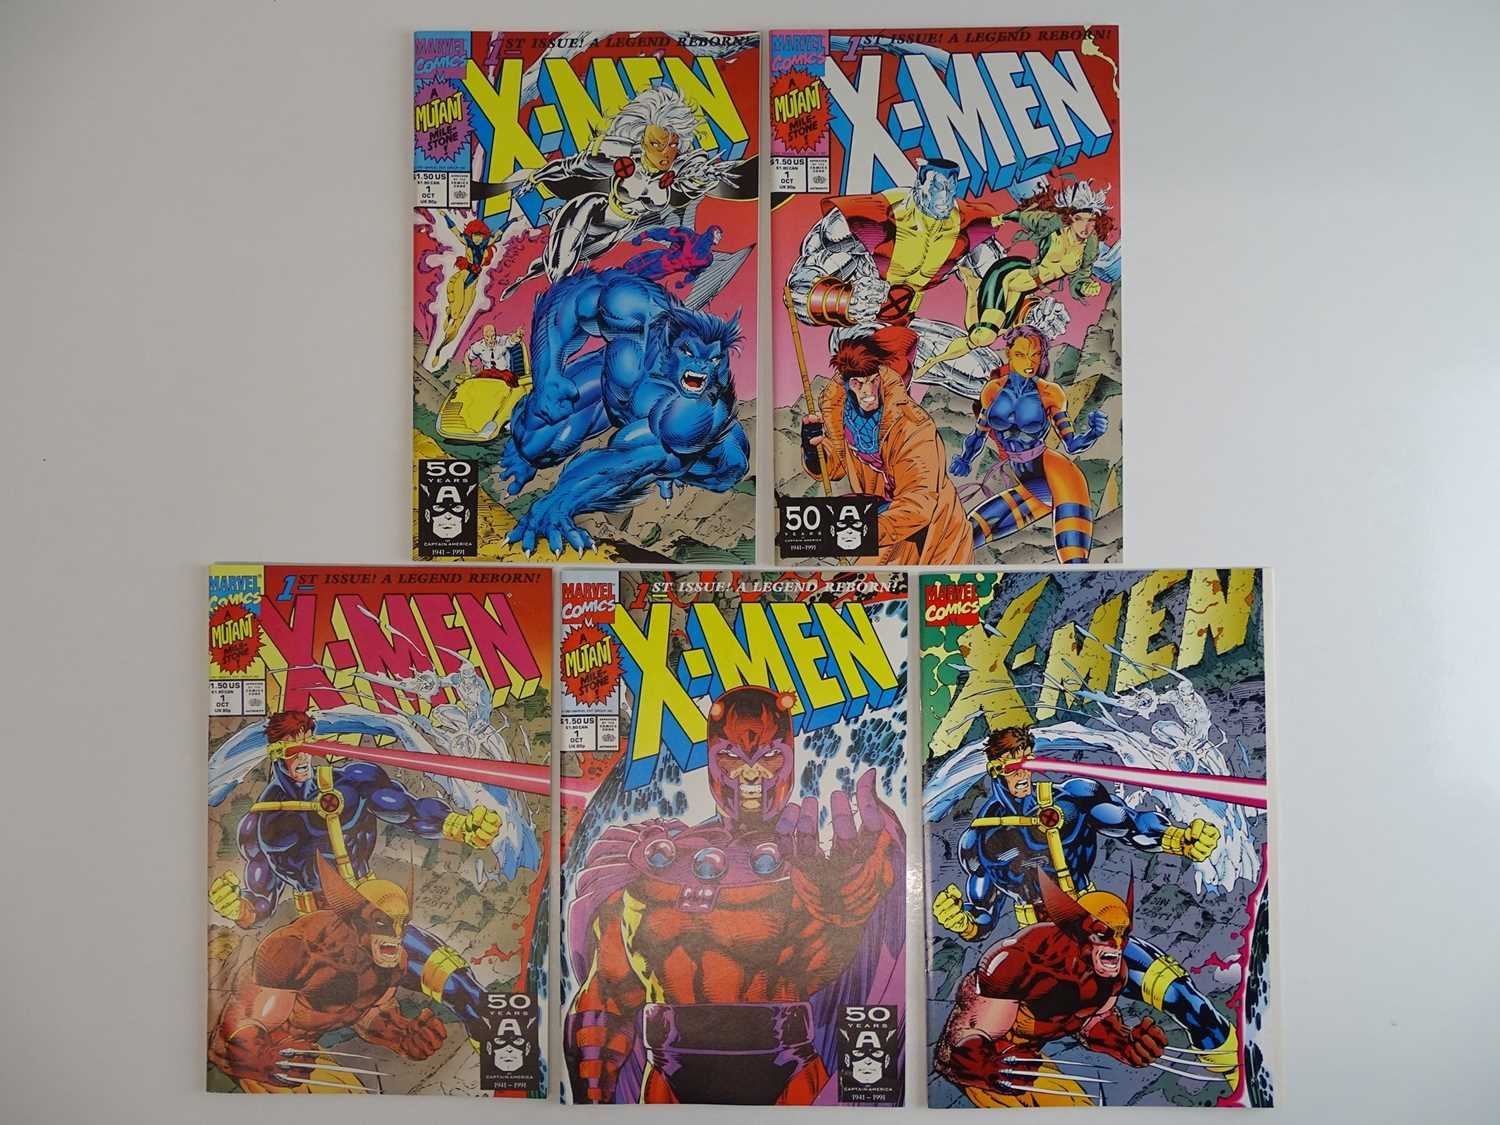 X-MEN #1 - (5 in Lot) - (1991 - MARVEL) - Complete set of ALL five variant covers - Jim Lee